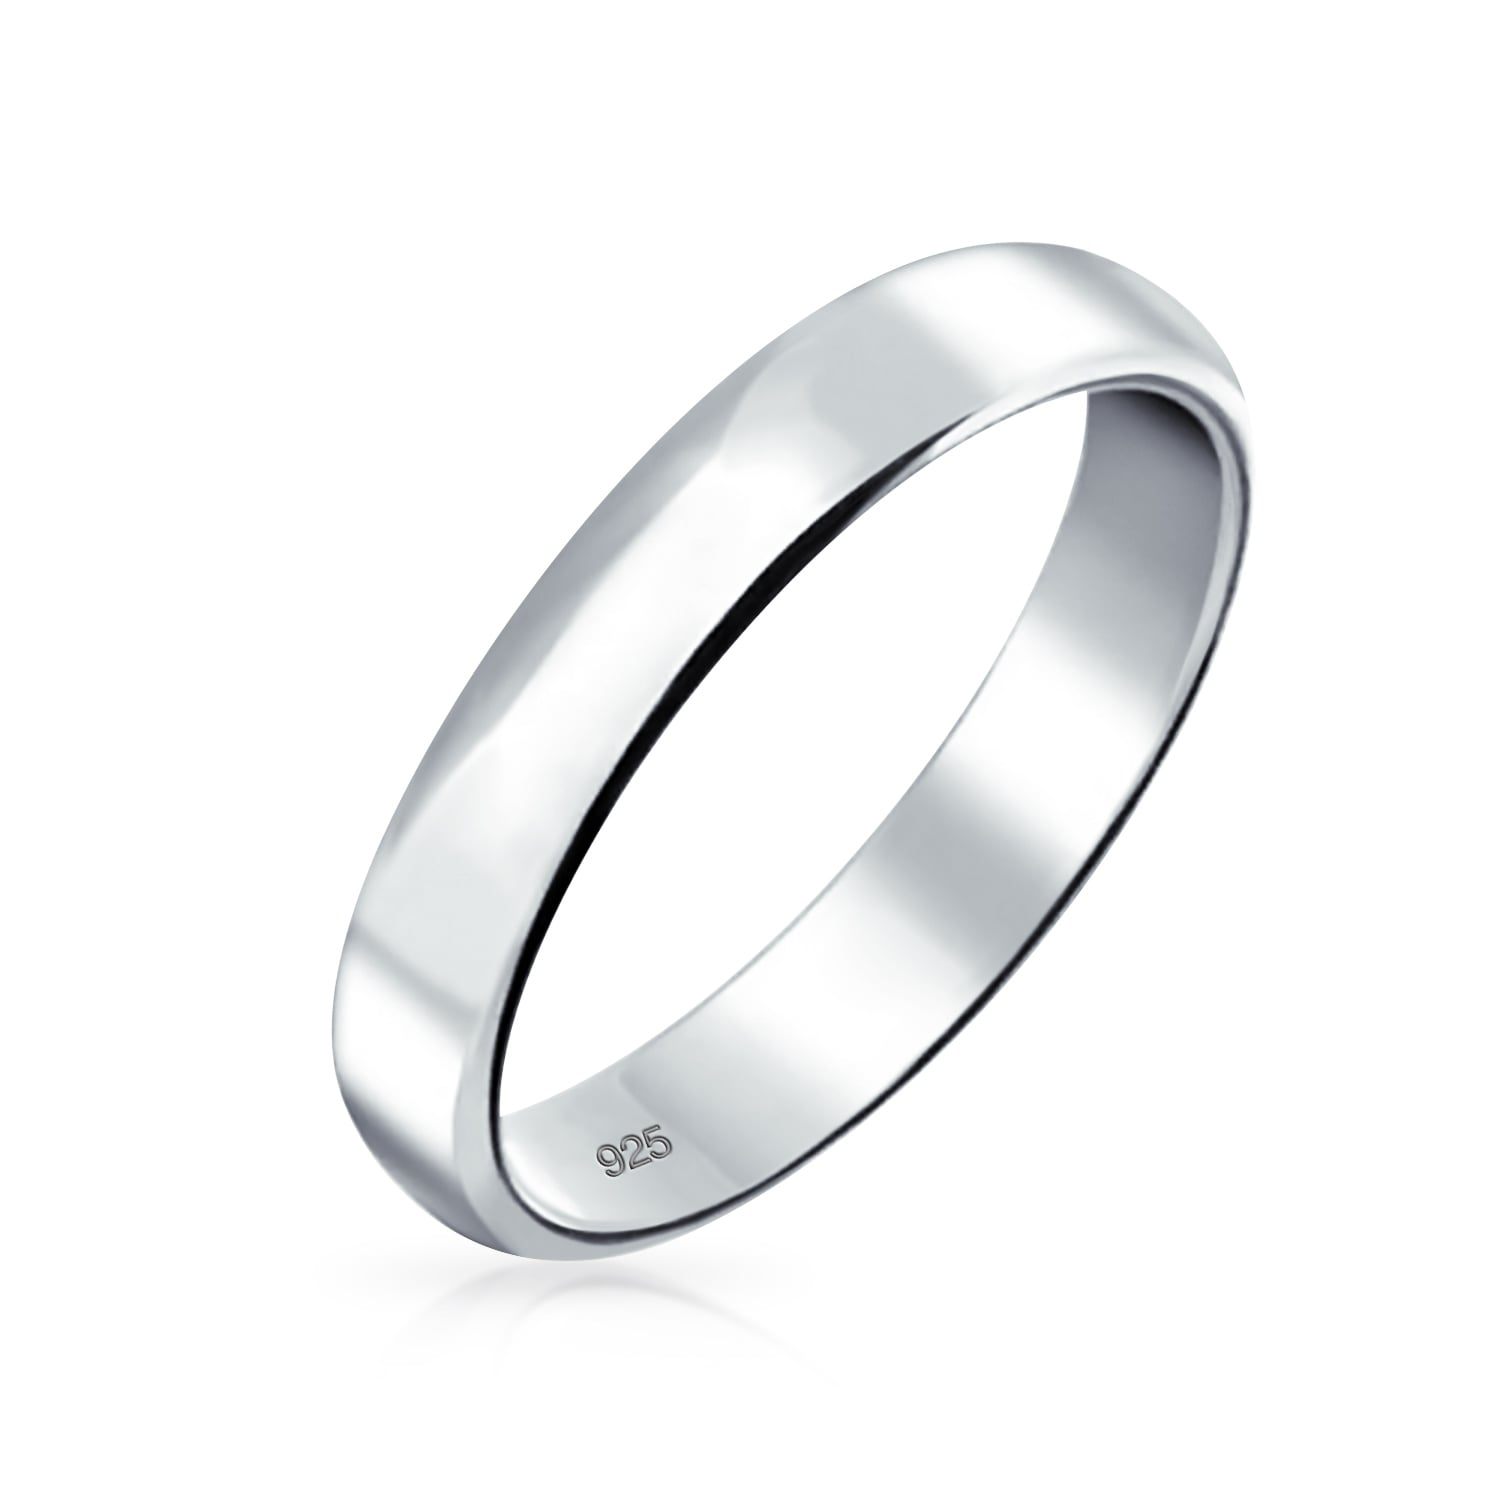 It is just a picture of Plain Simple 488 Sterling Silver Dome Couples Wedding Band Ring 48MM